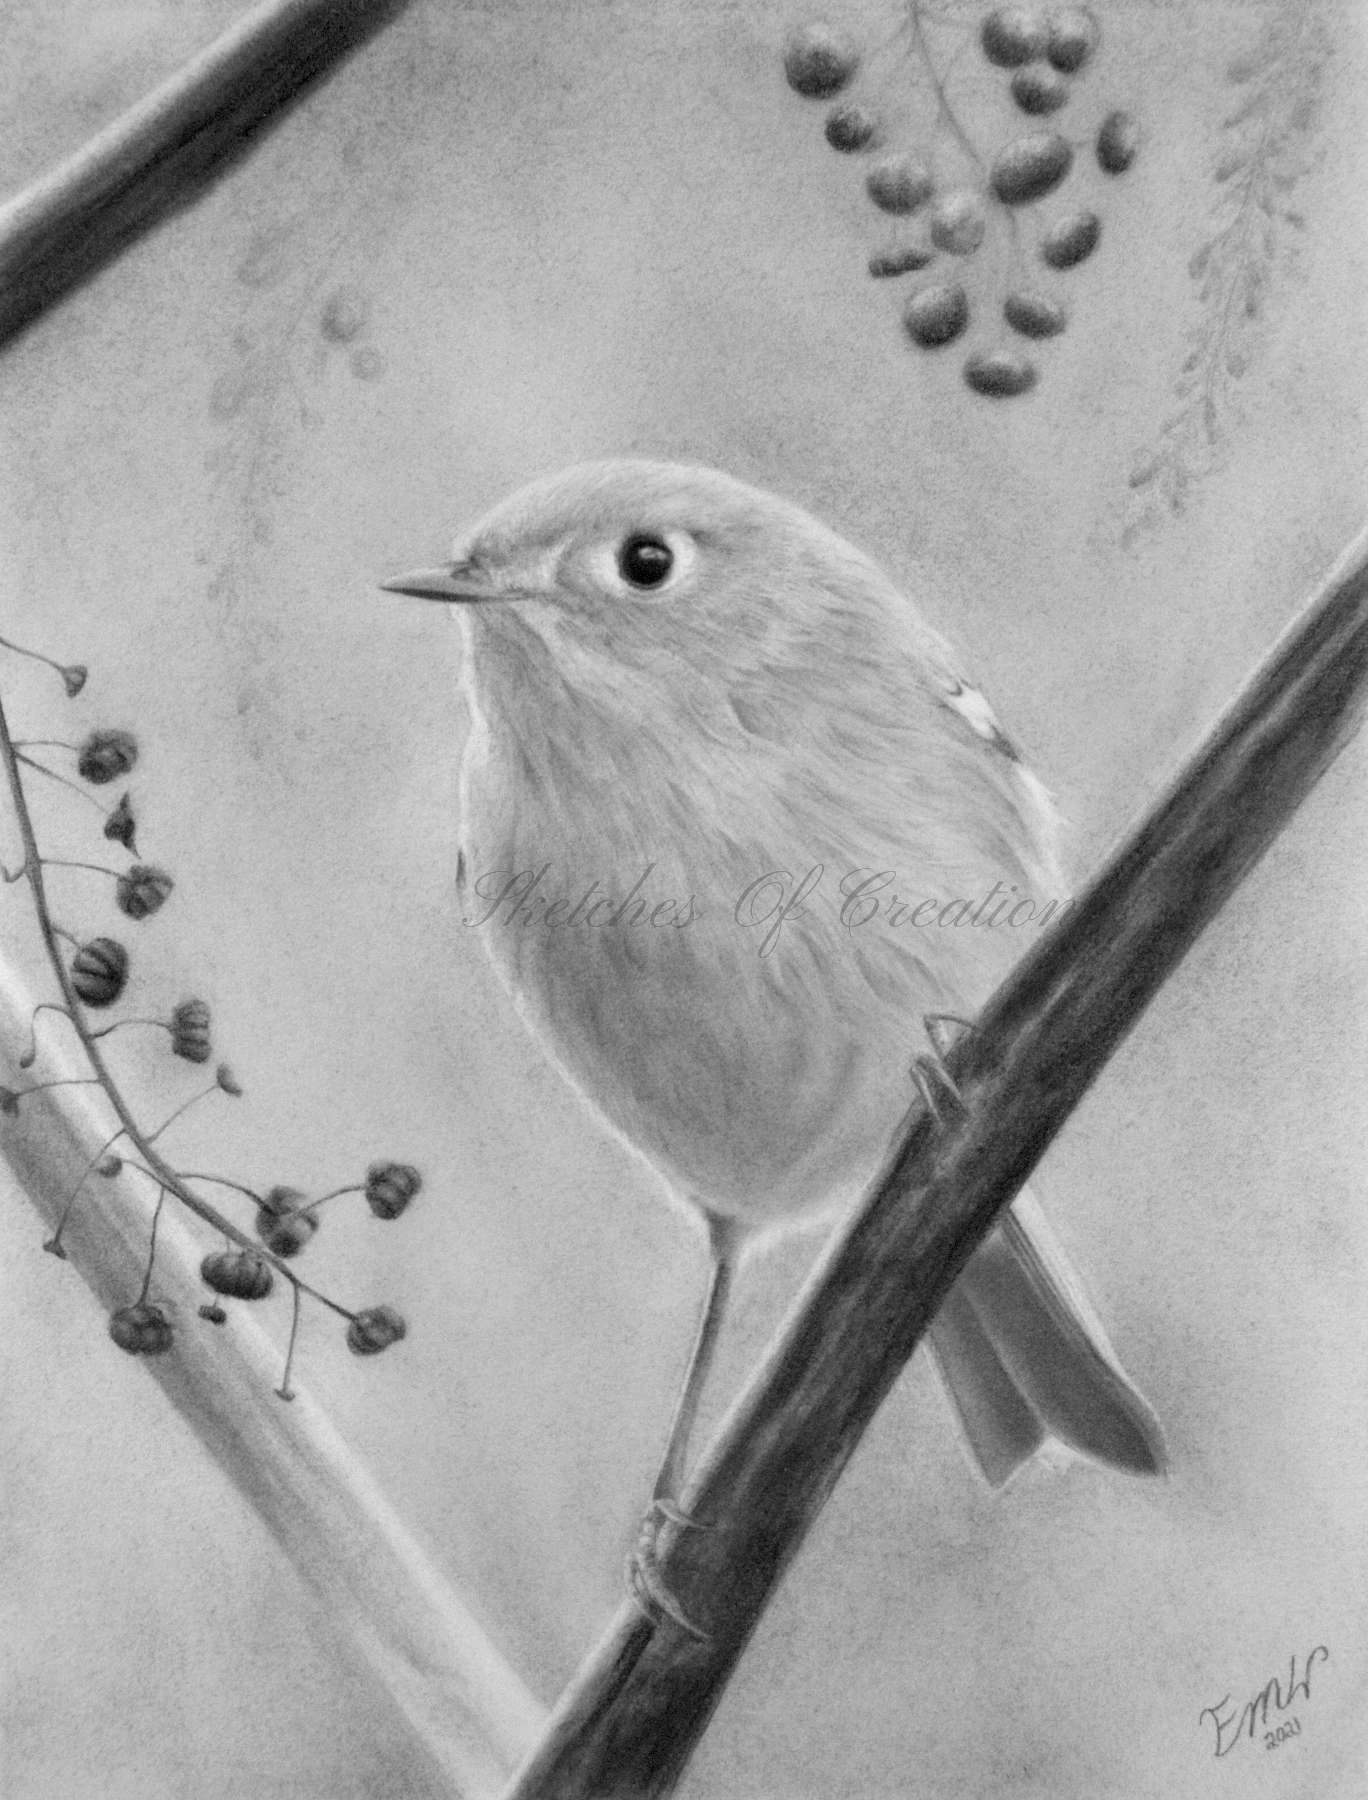 A drawing of a Ruby-crowned Kinglet